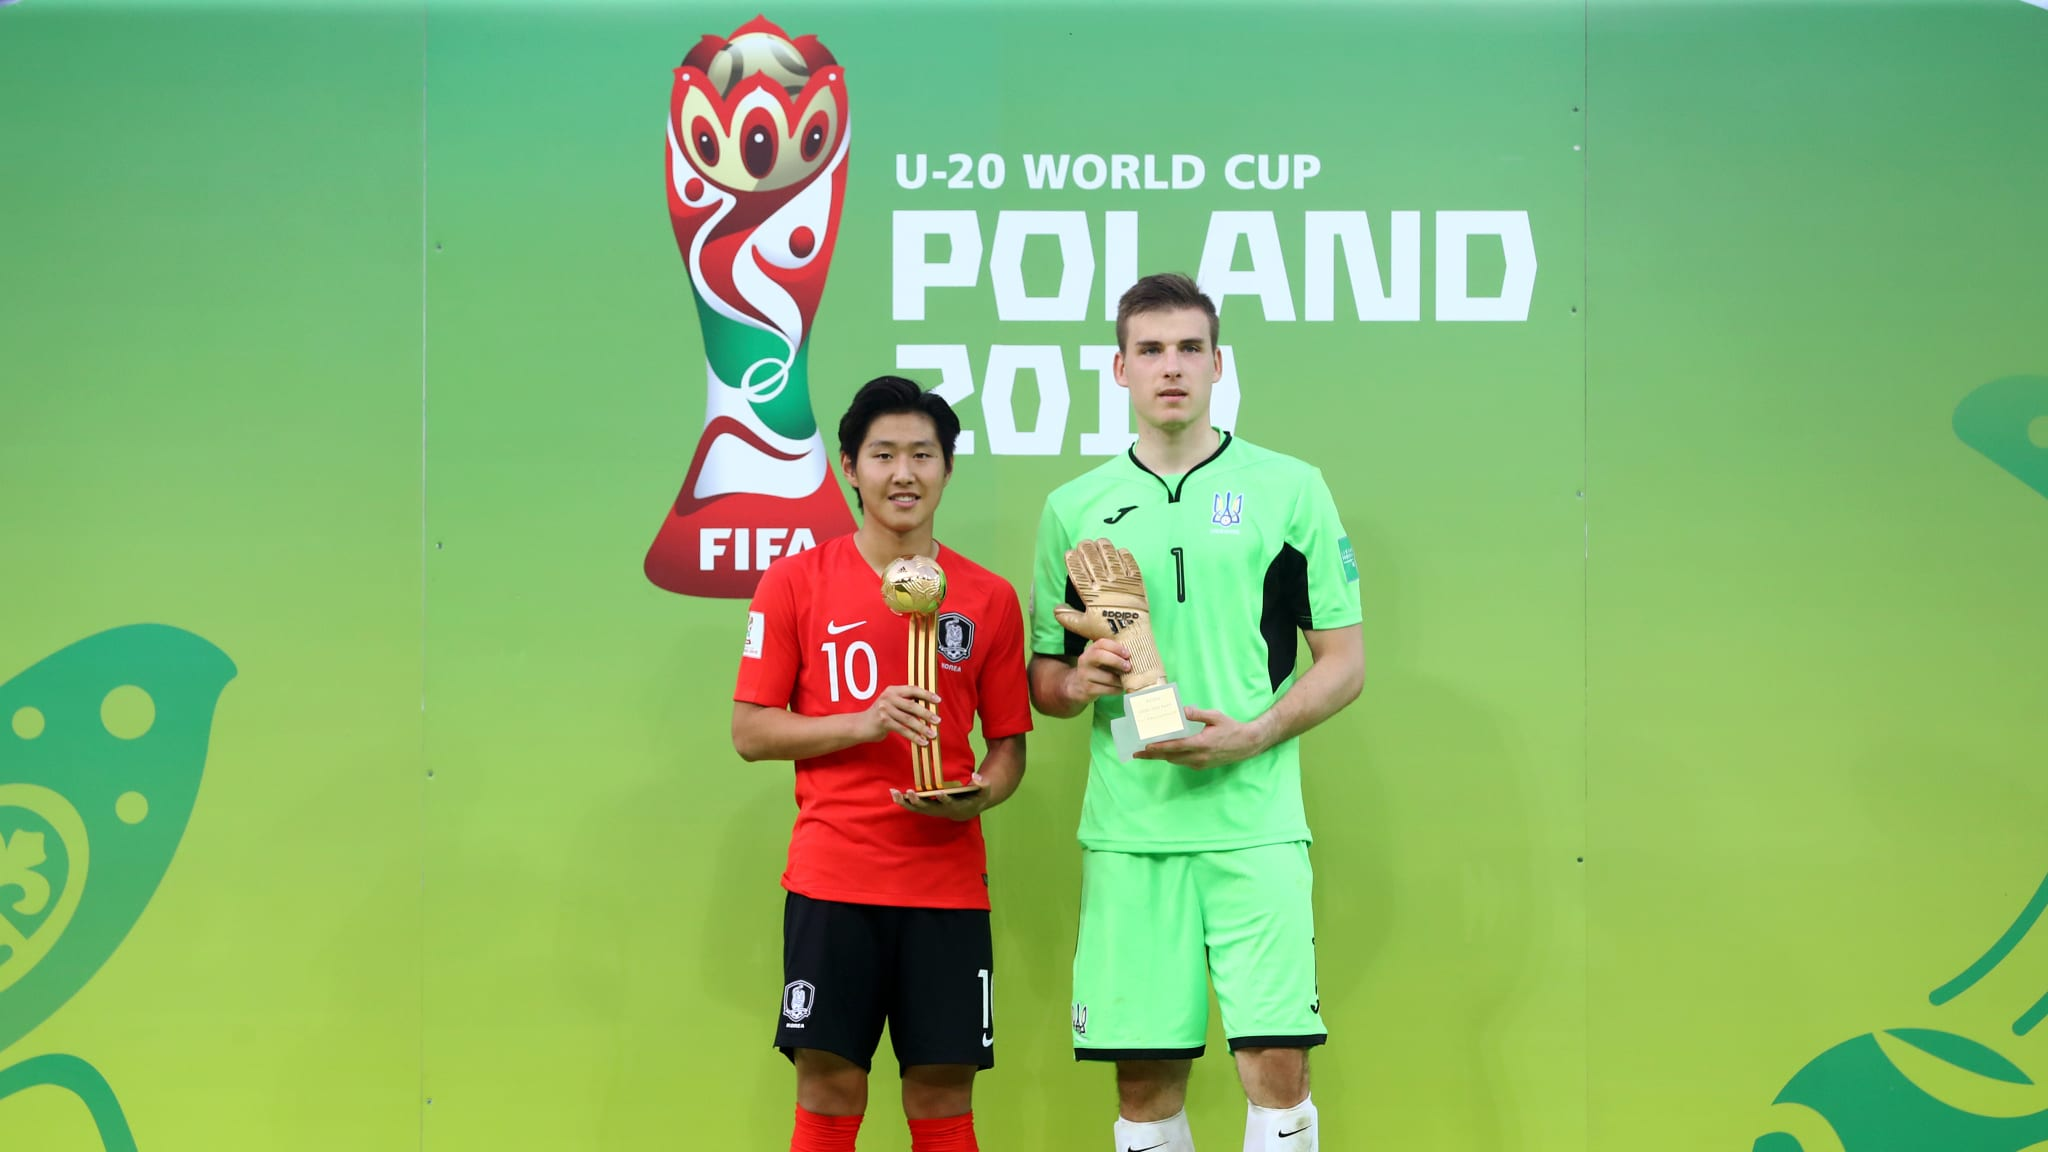 Kangin Lee of Korea Republic poses with his Adidas Golden Ball Award and Andriy Lunin of Ukraine poses with his Adidas Golden Glove Award